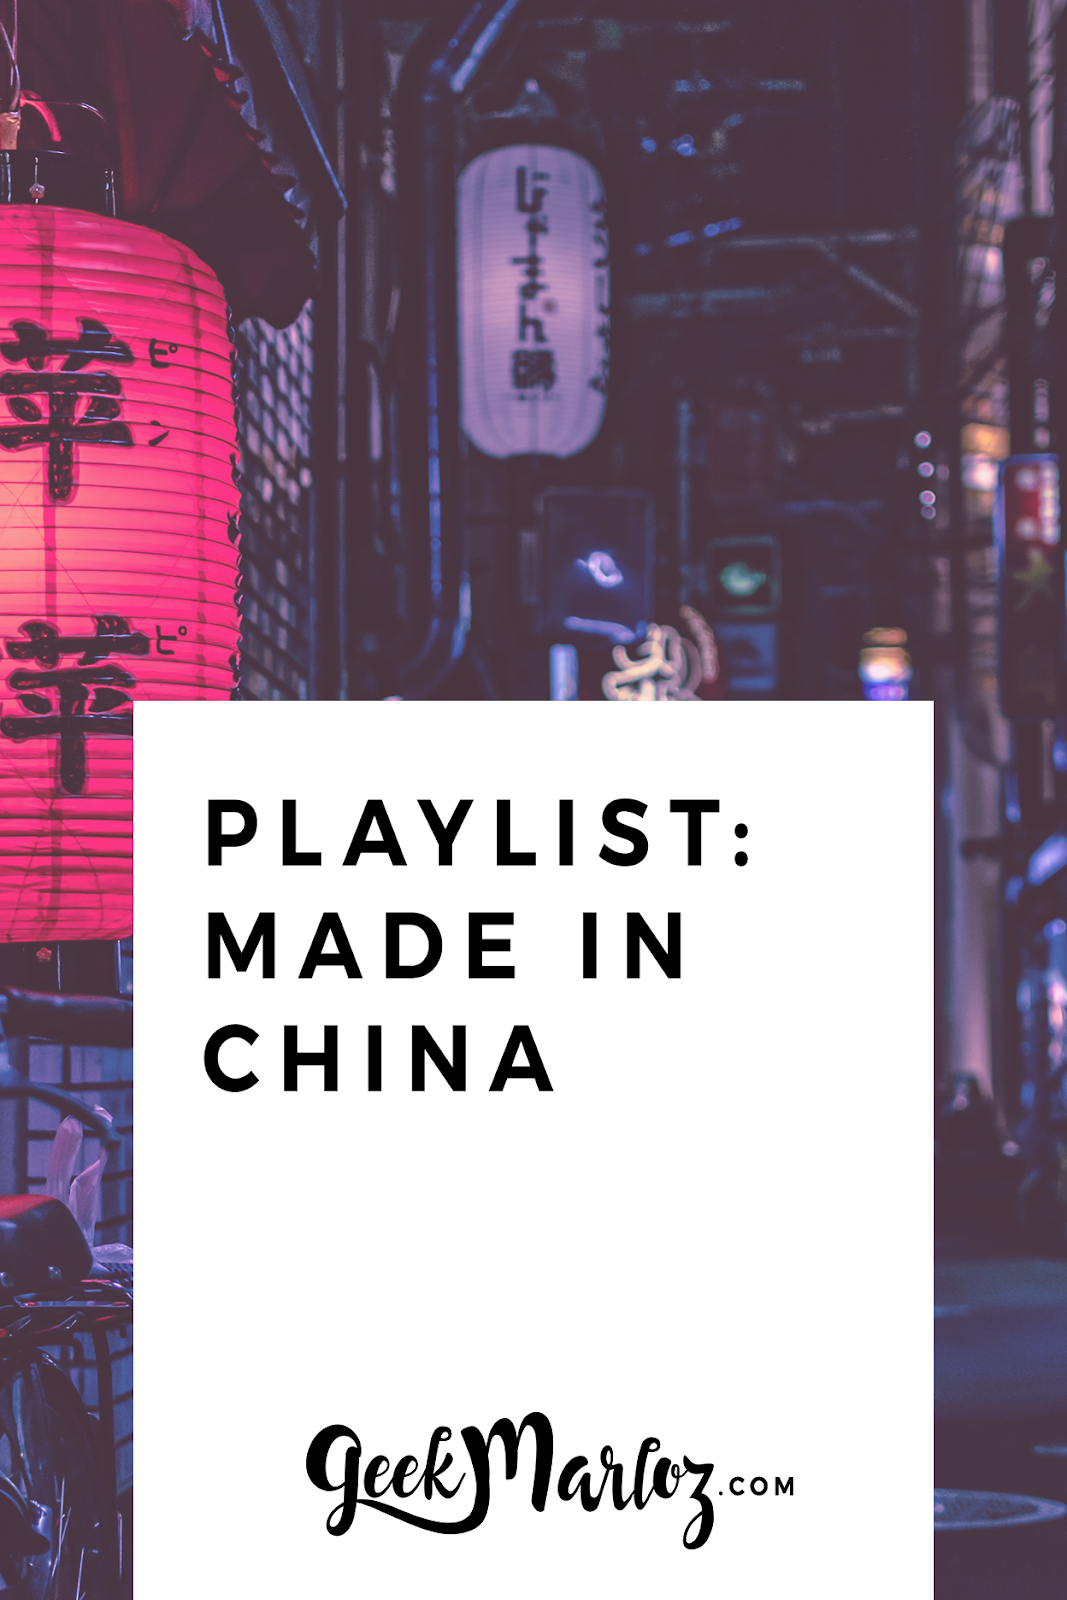 Playlist: Made in China